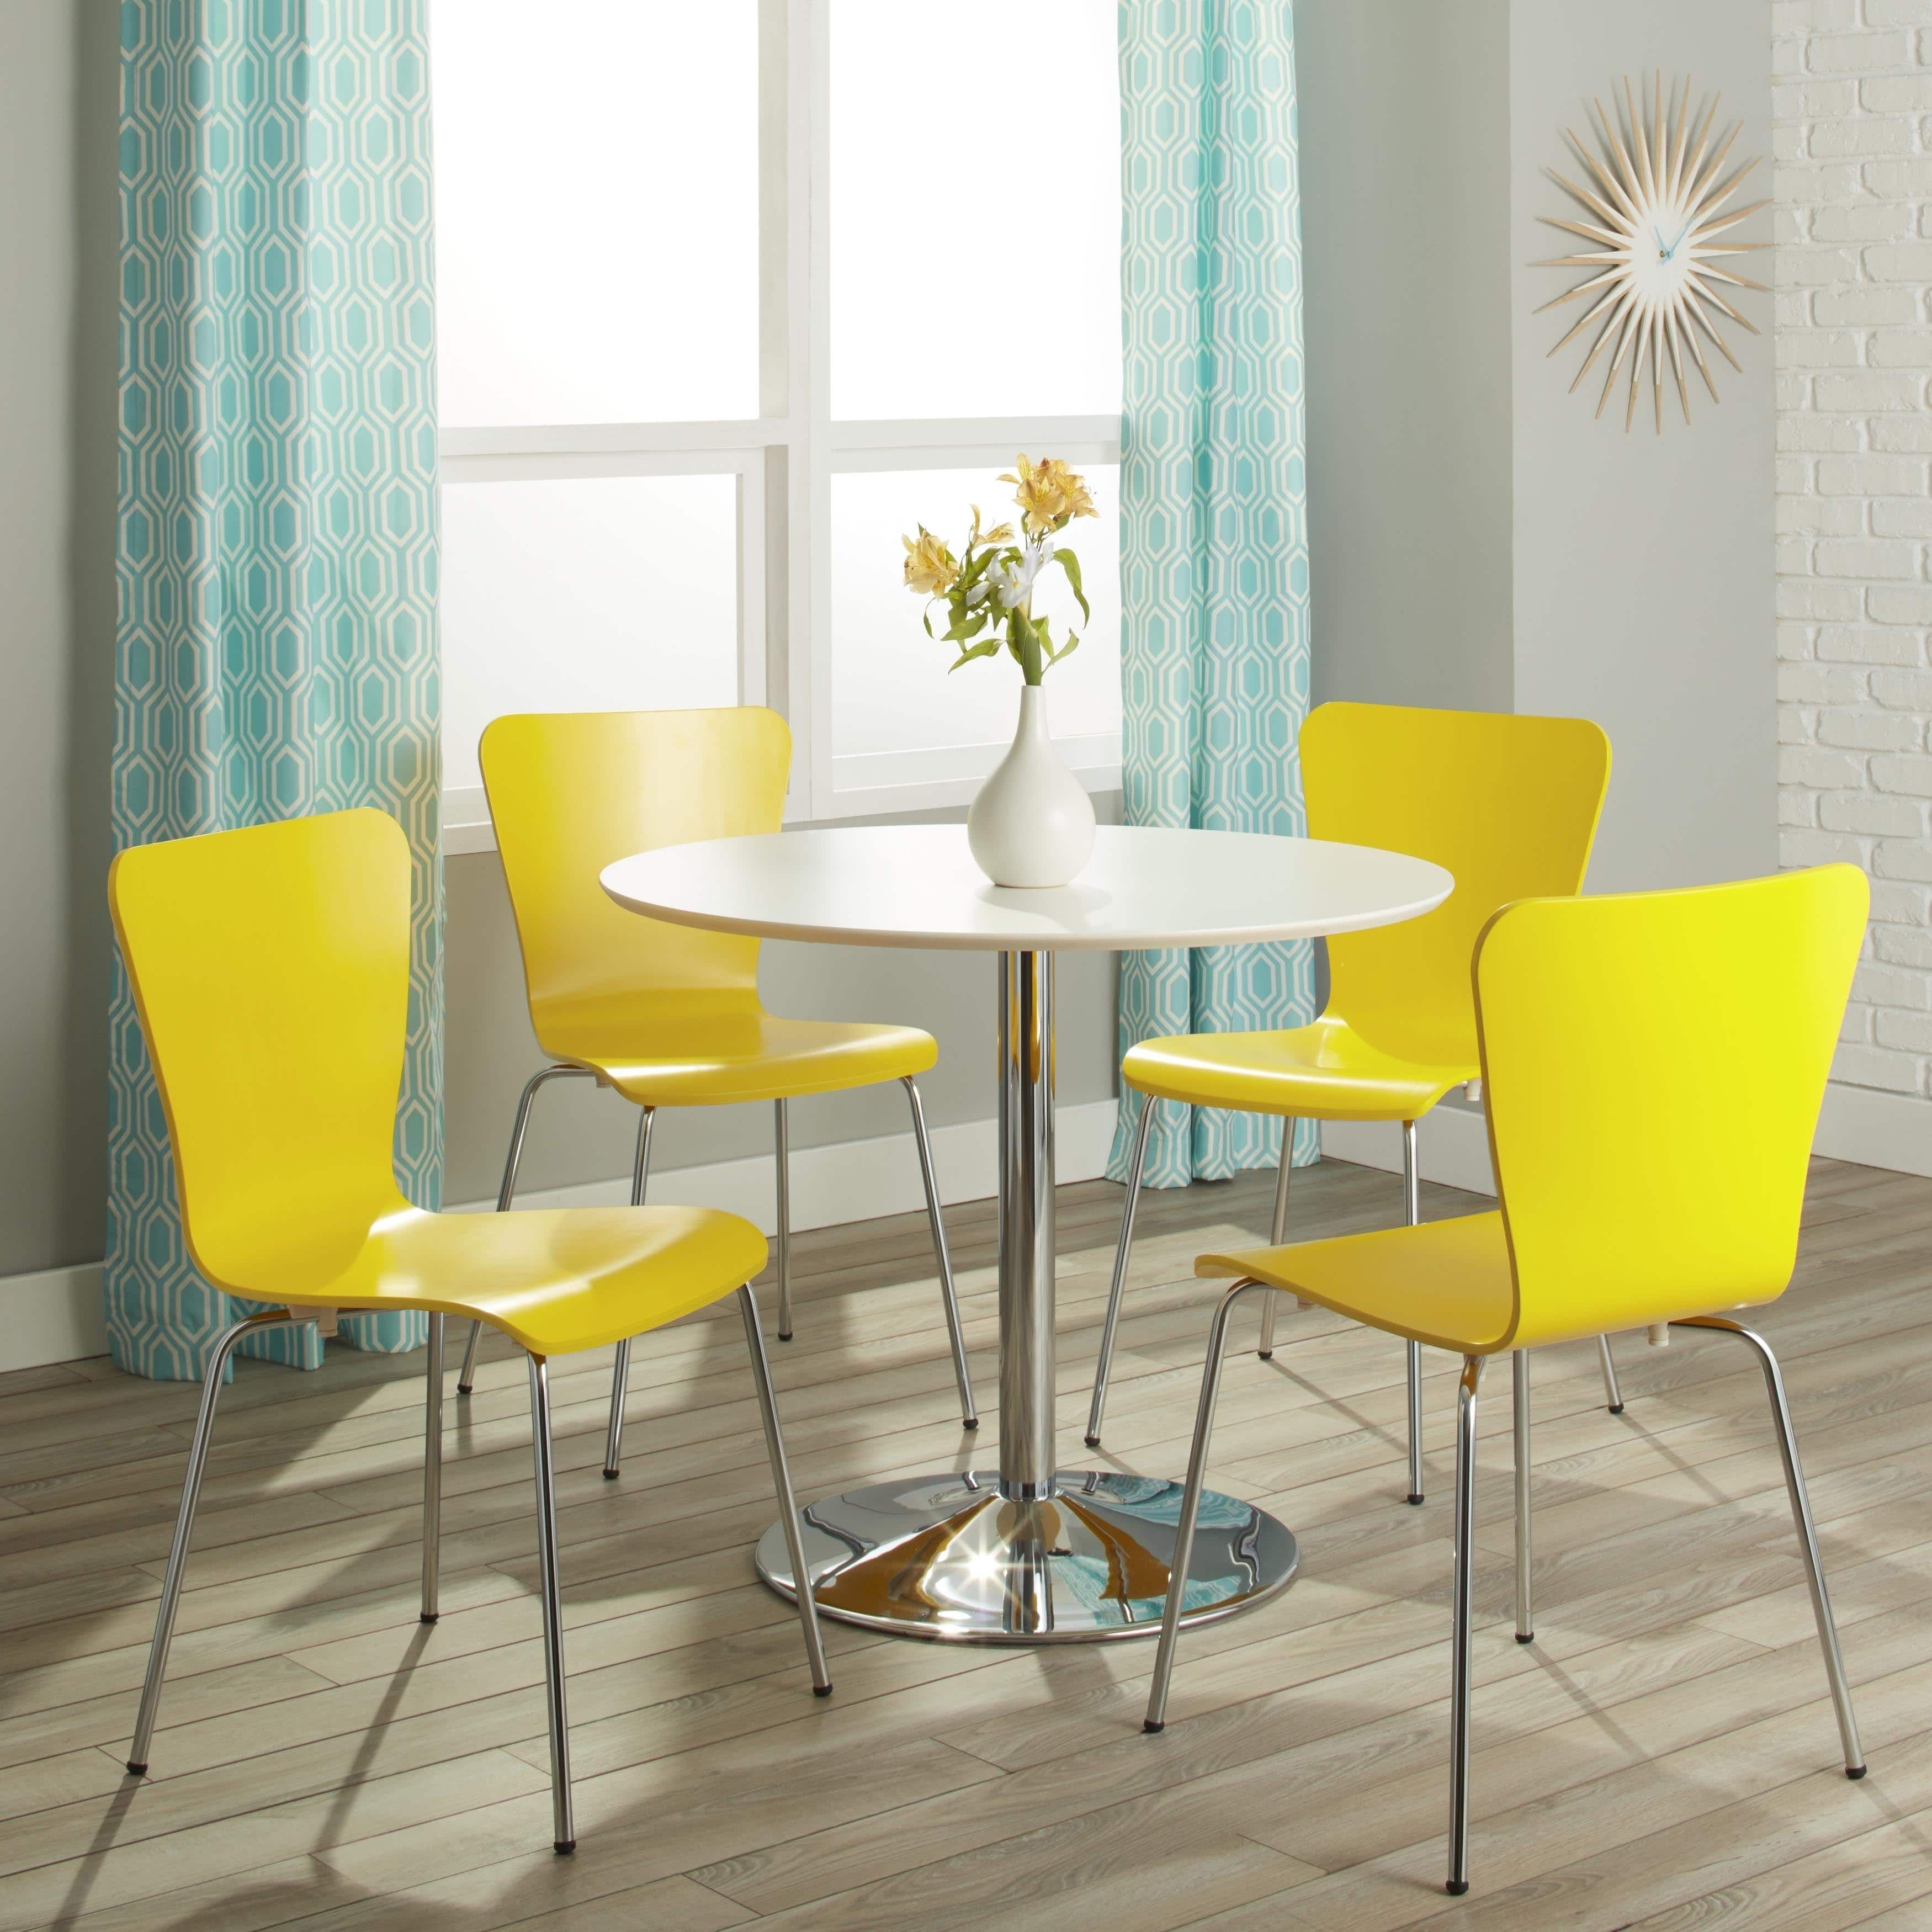 Simple Living Pisa Modern 5 Piece Dining Set (With 4 Yellow Chairs), White